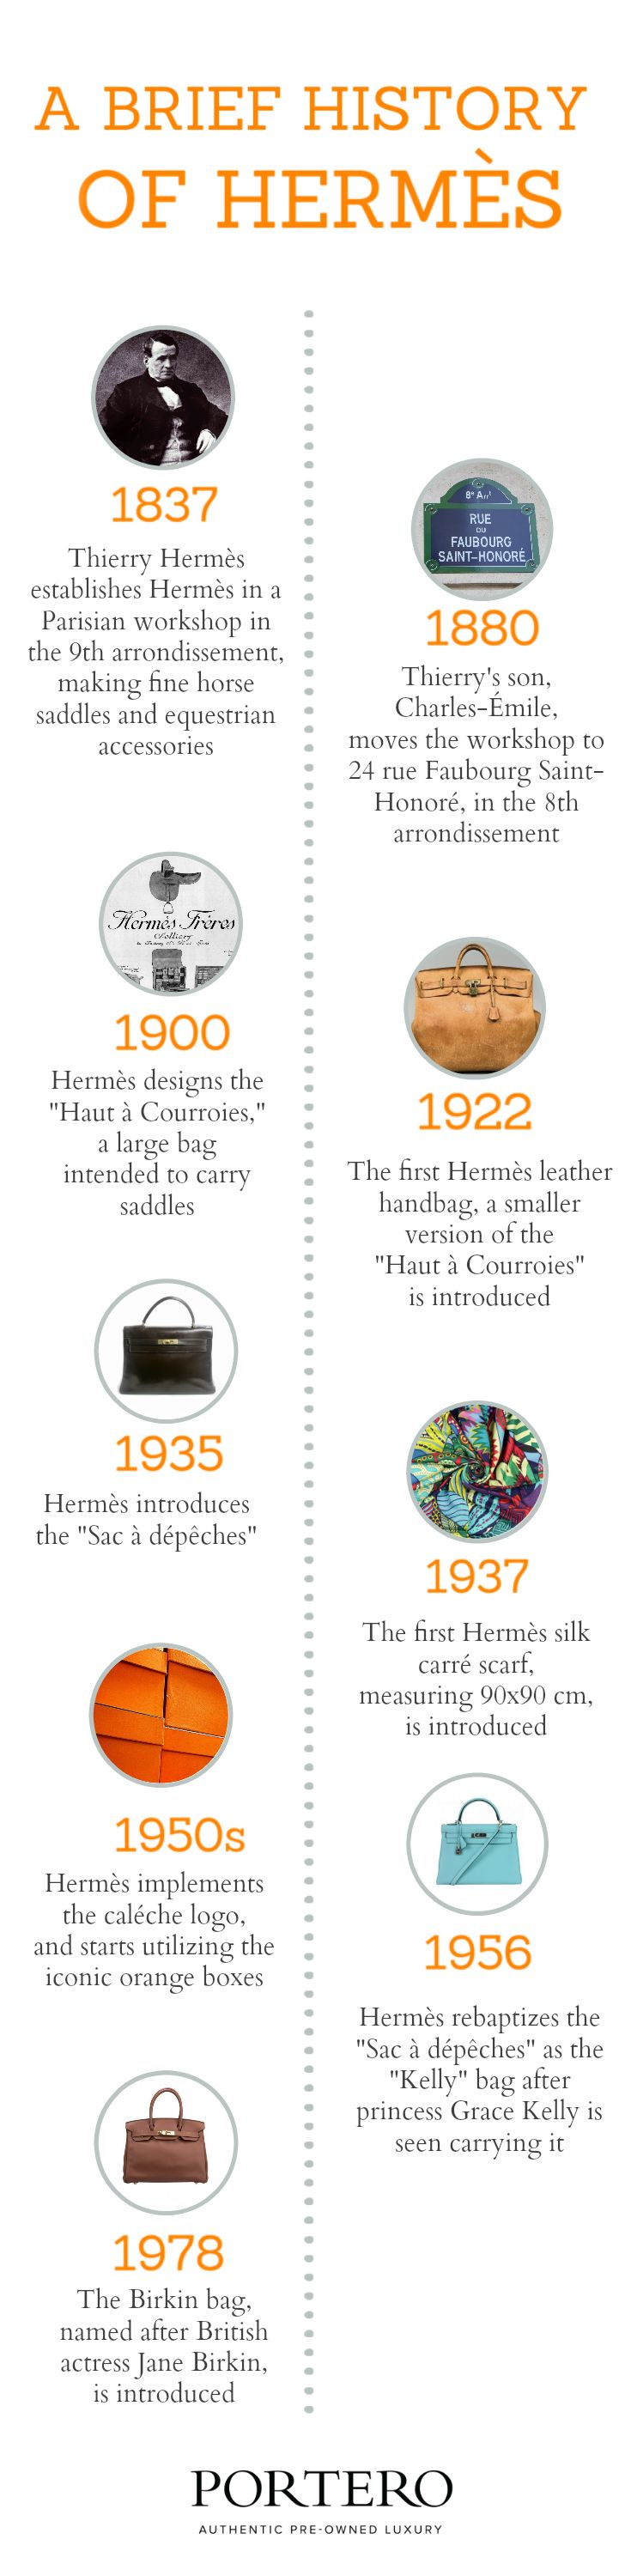 History of Hermes infographic